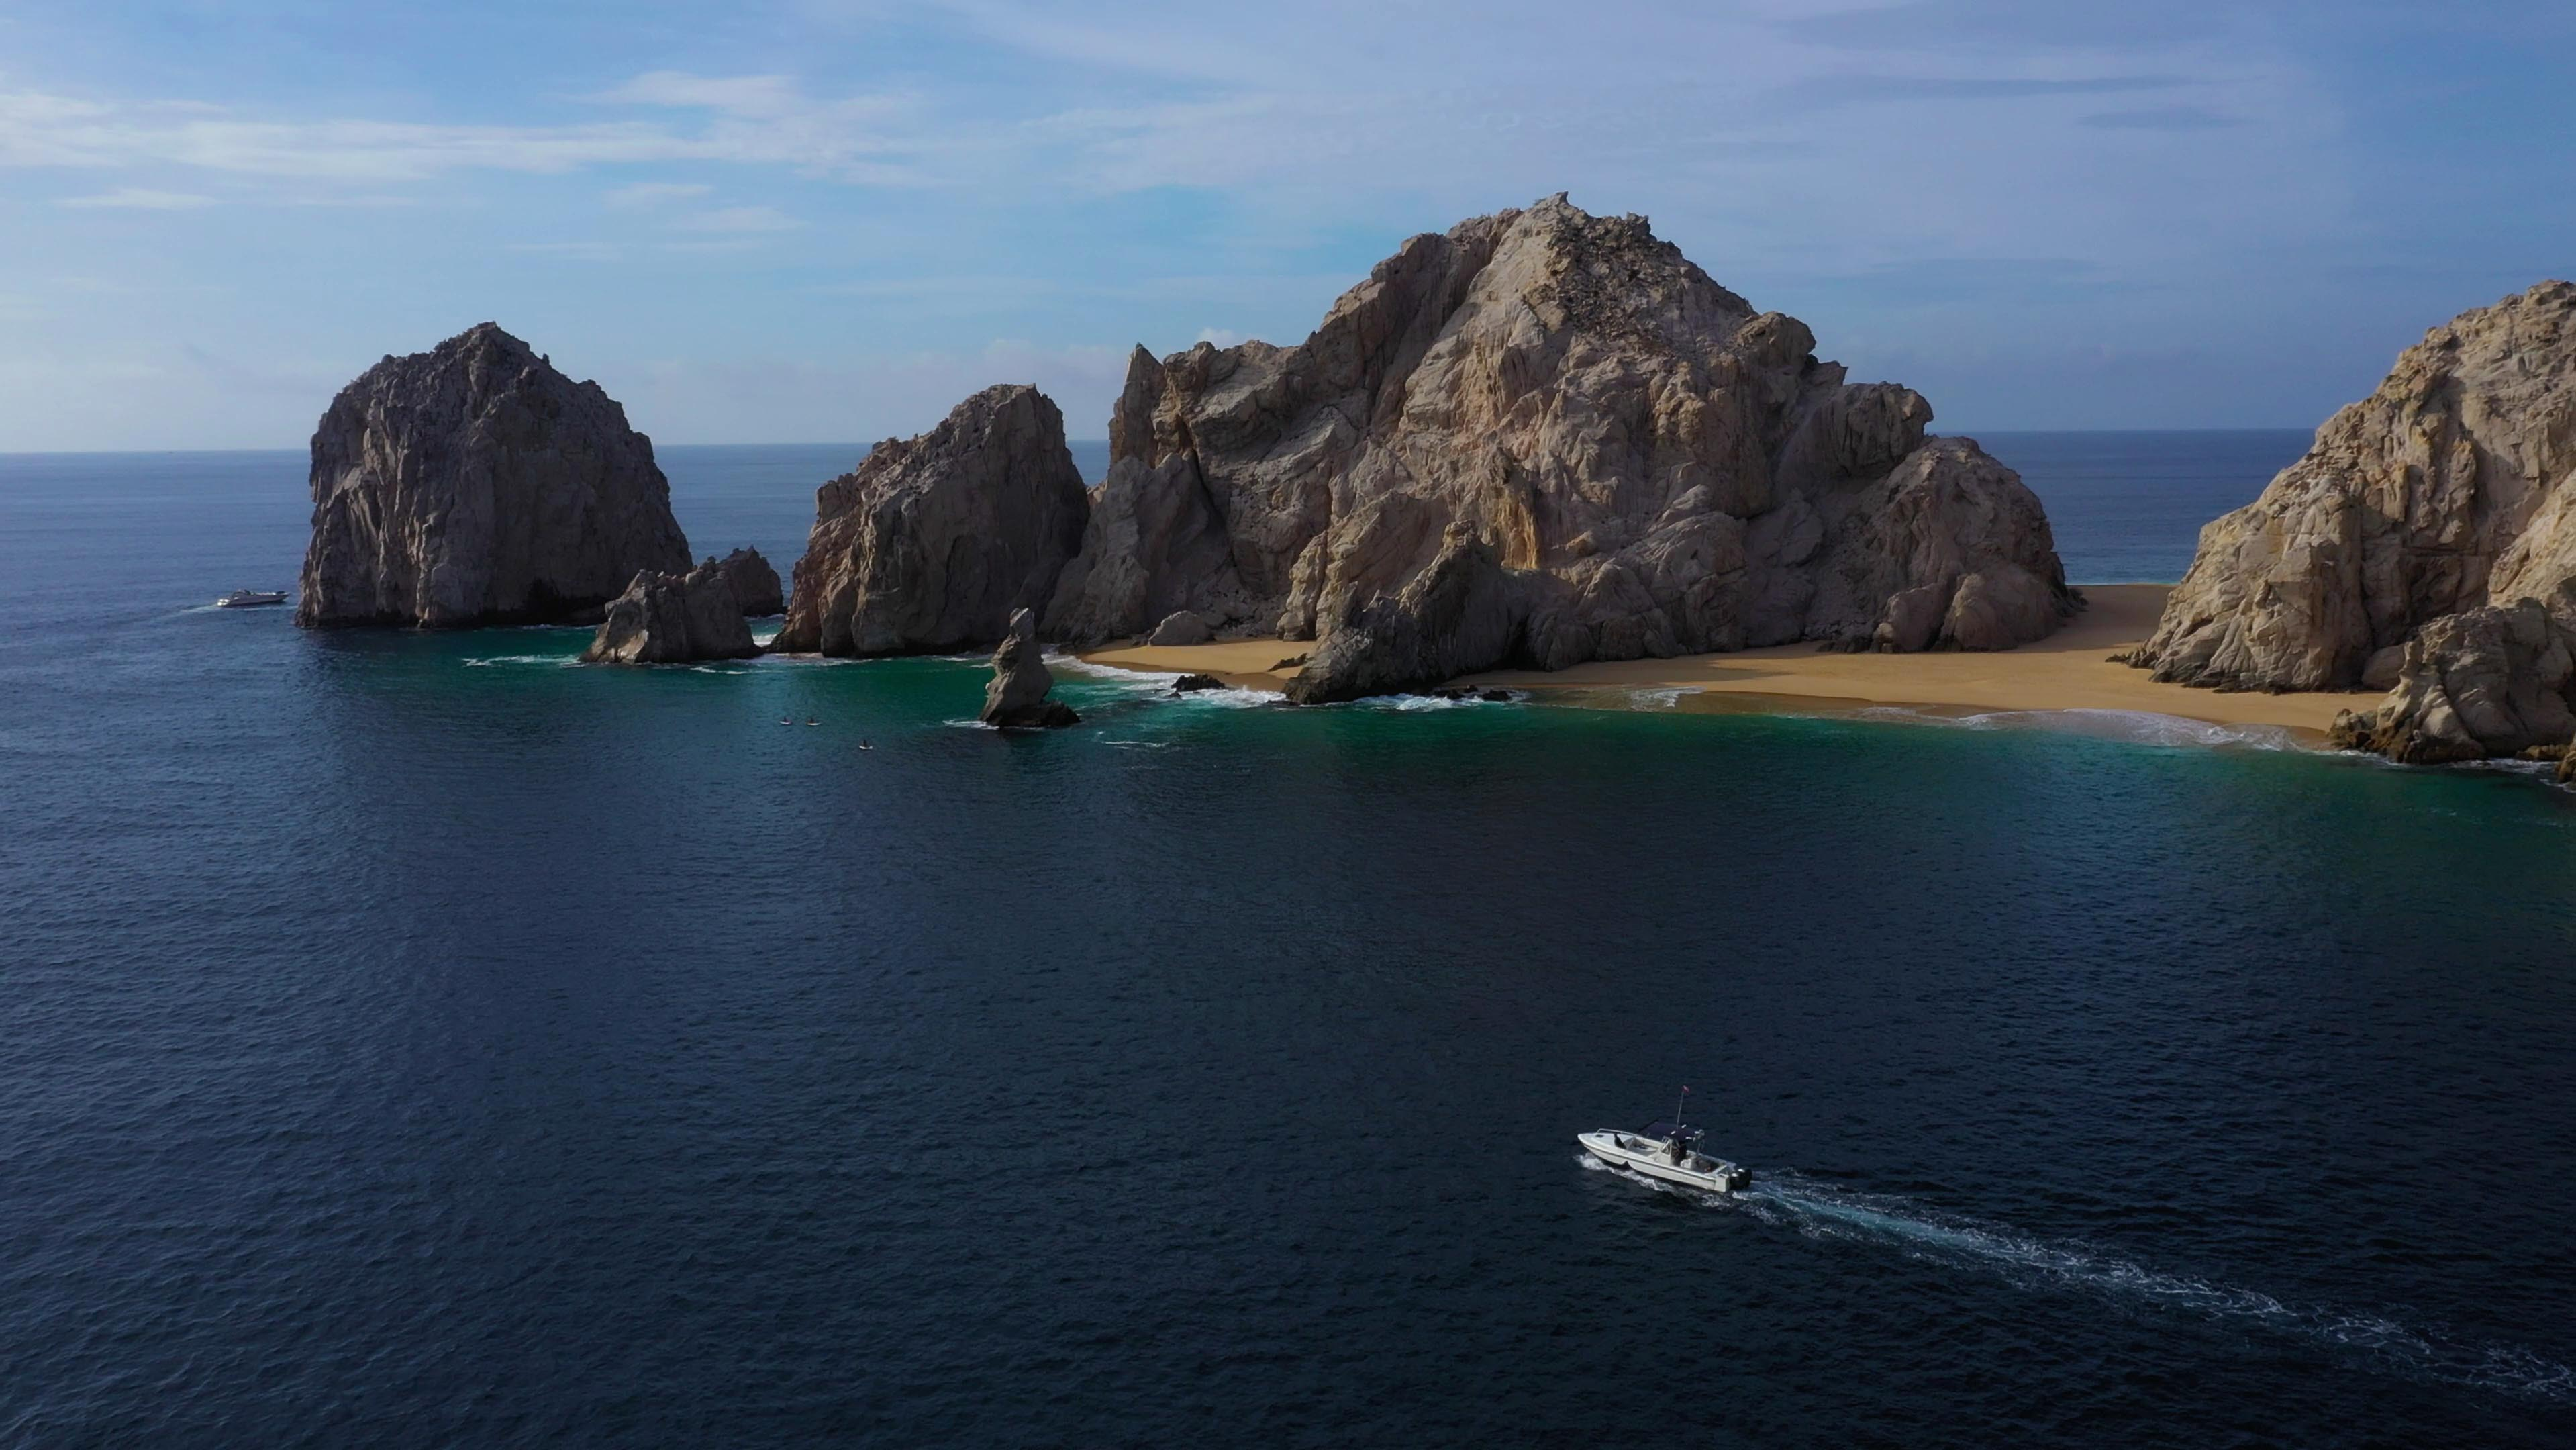 pelagic safari boat in front of Cabo san Lucas clifs